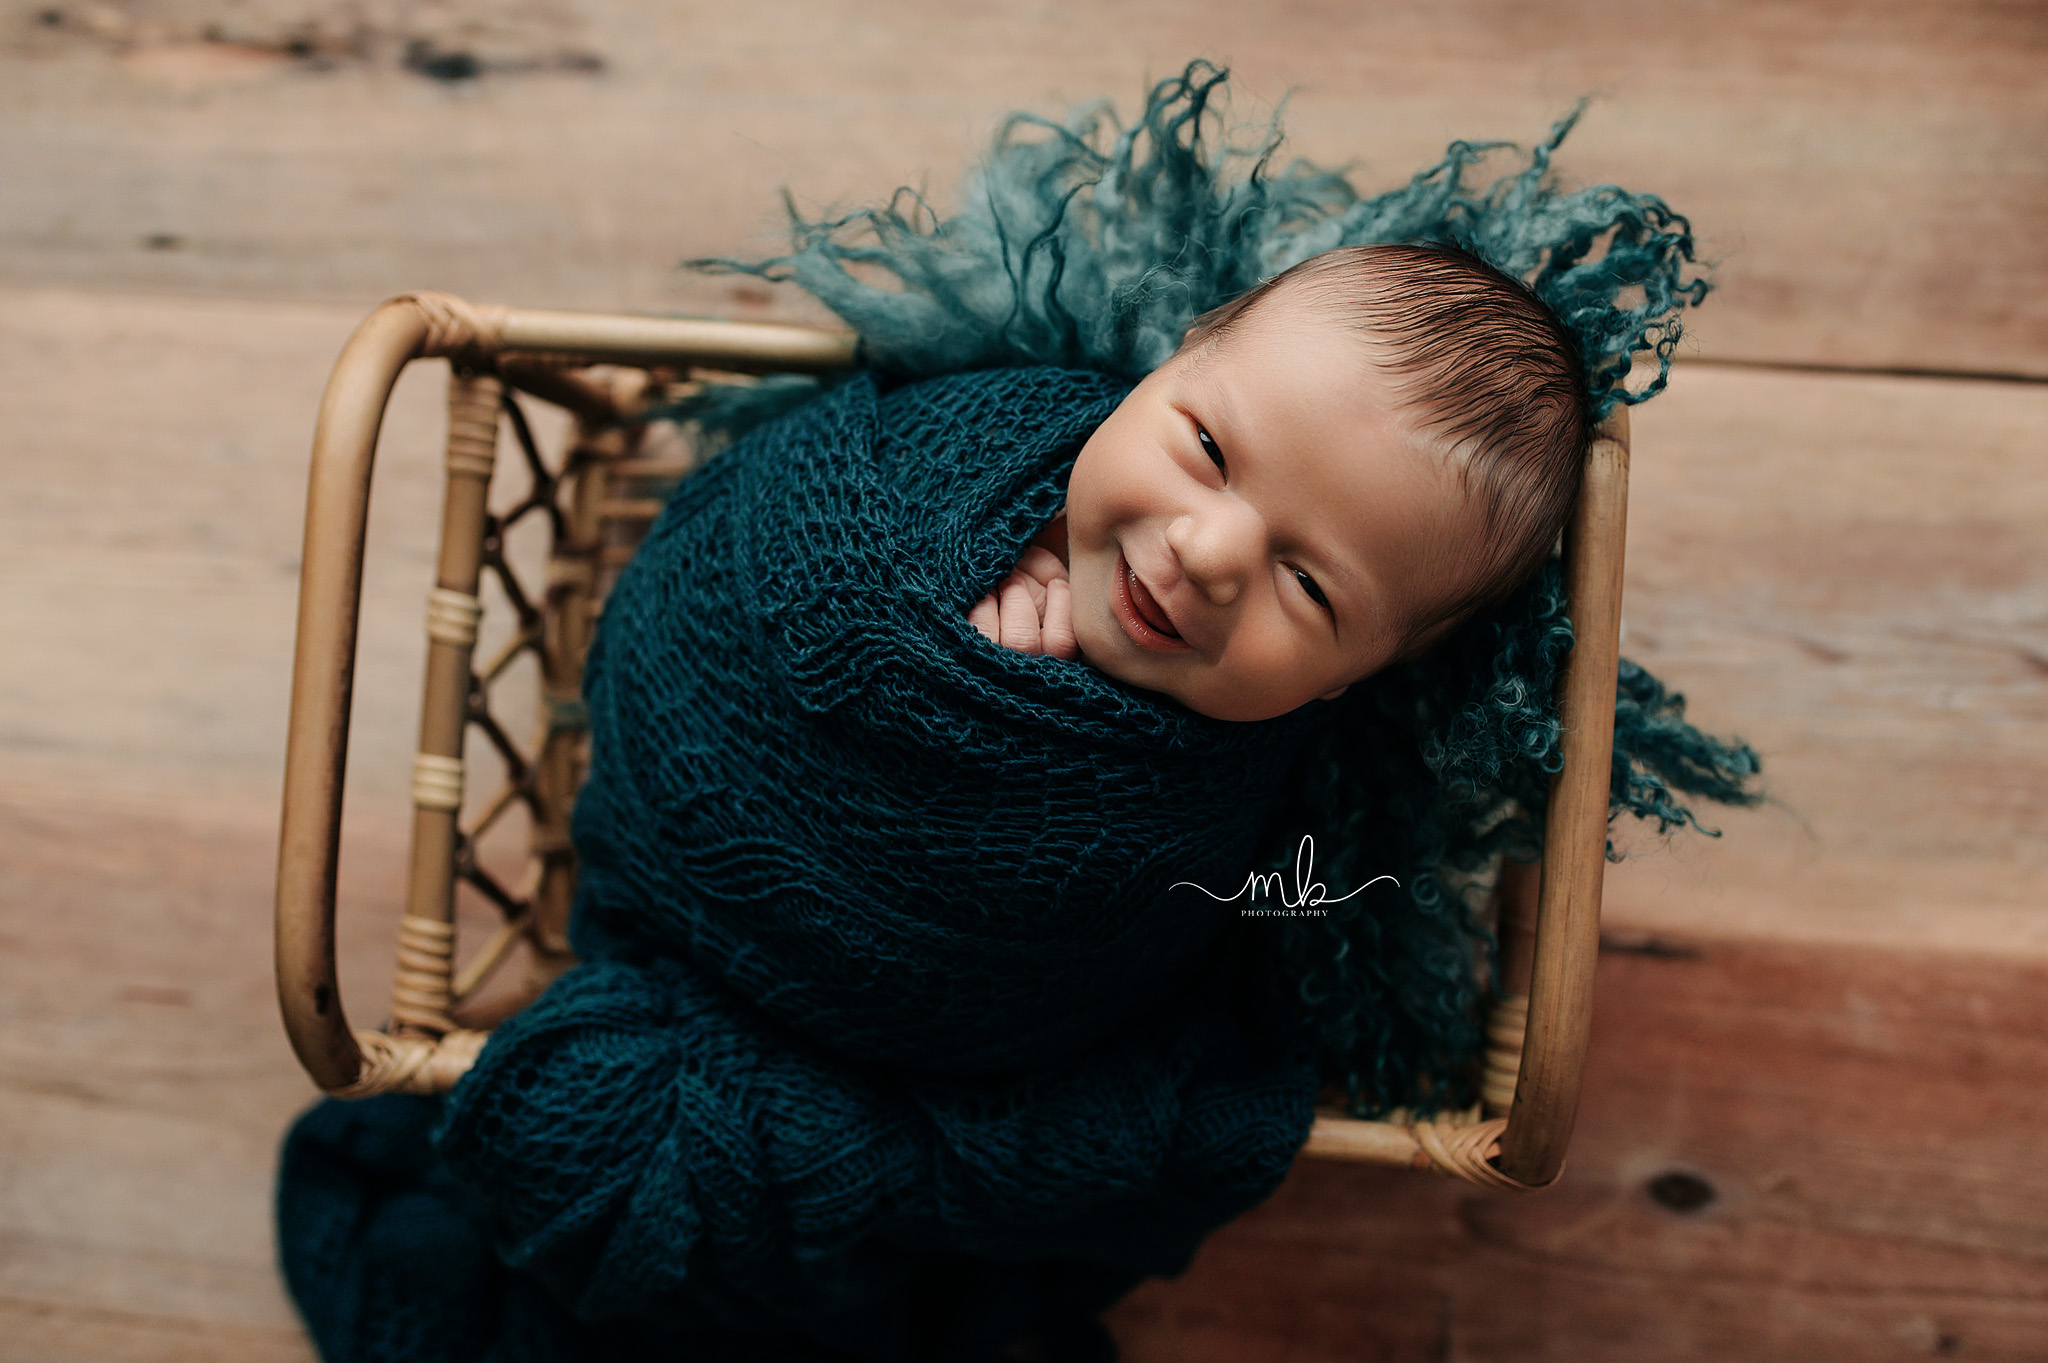 Melissa Berry, Melissa Berry Photography, Newborn, Newborn Photography, Newborn smiling, Newborn wrapped in teal